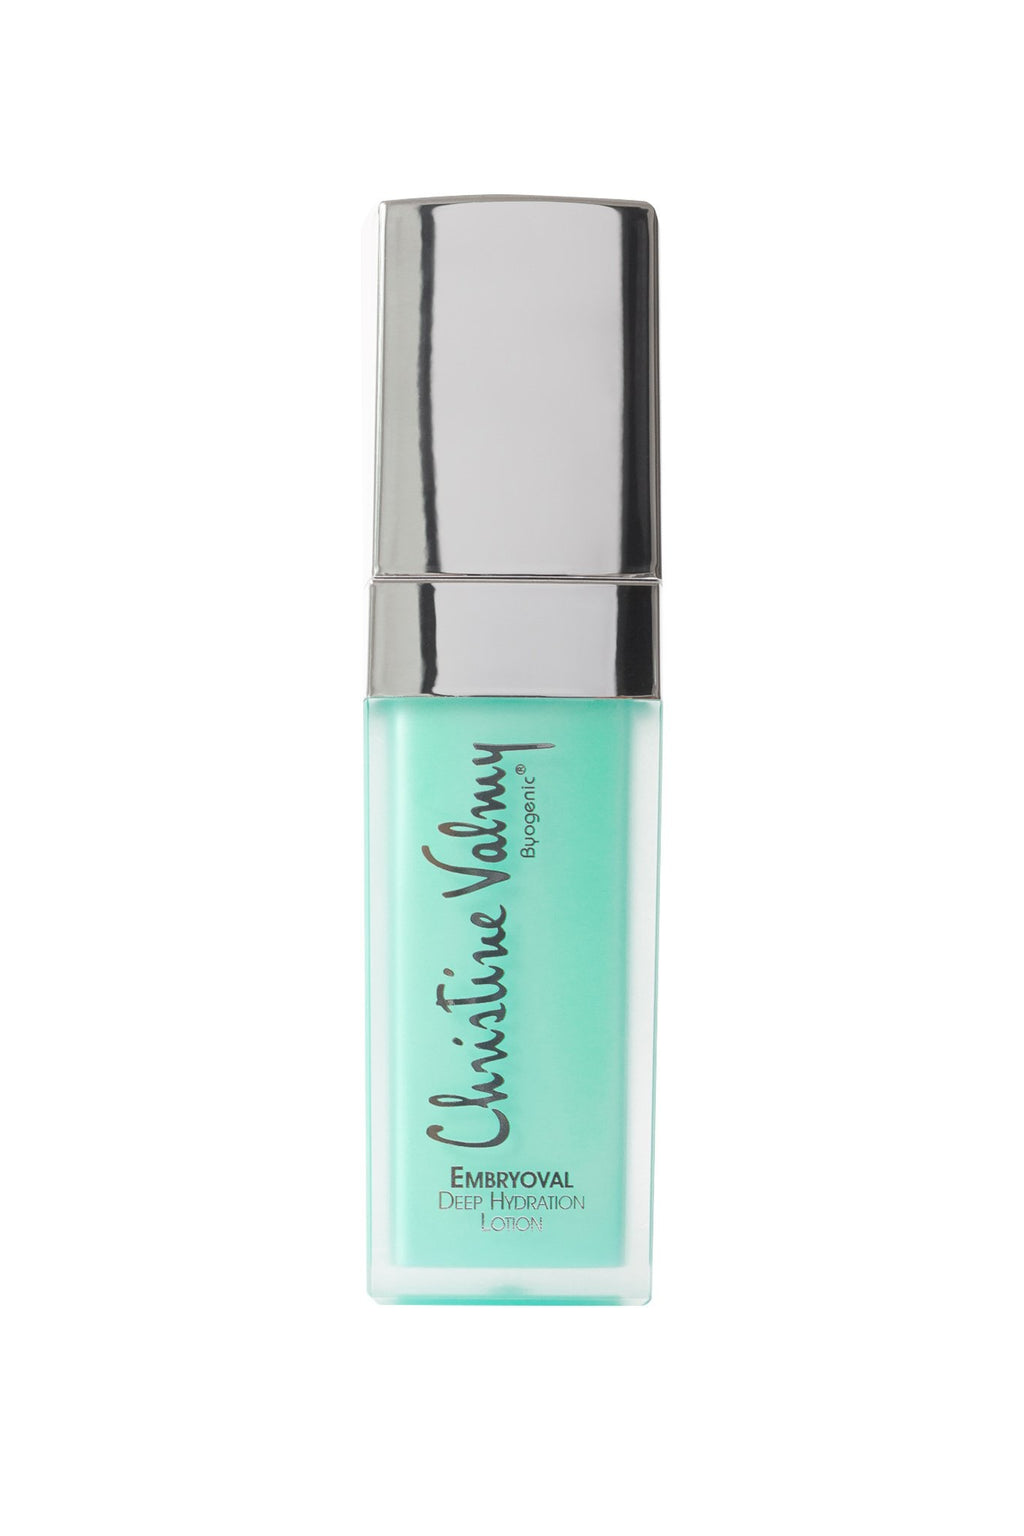 Christine Valmy Embroval hydrating lotion, for dry skin.